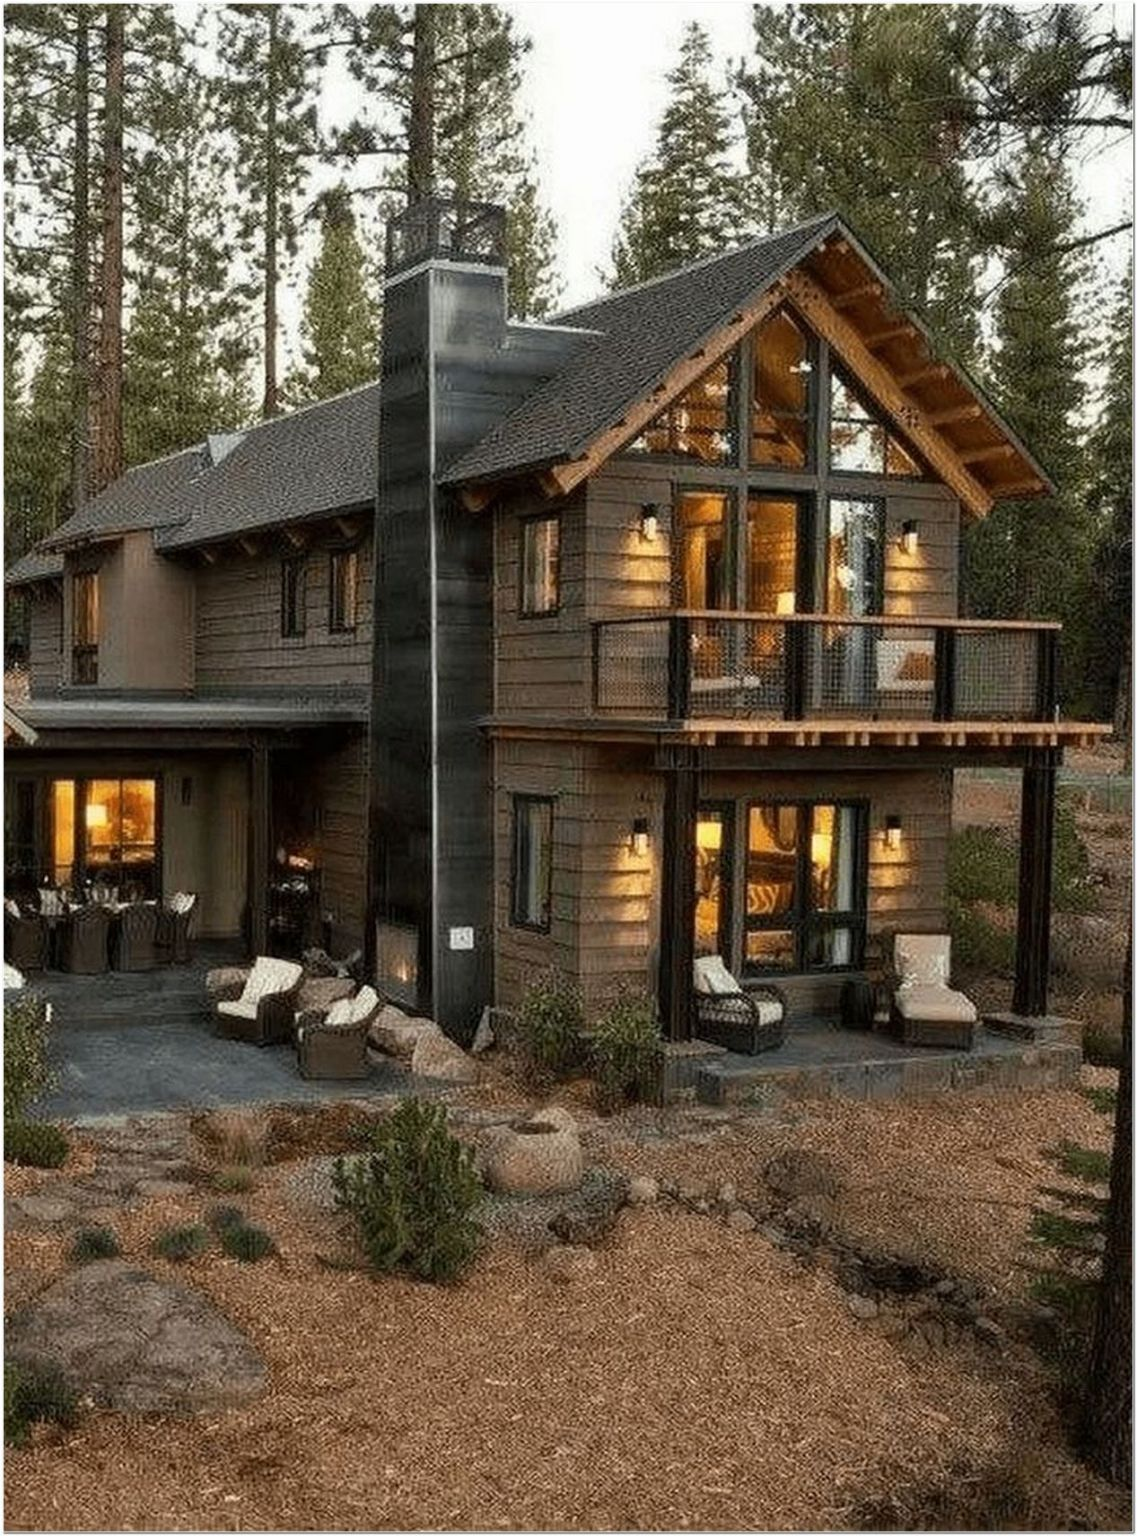 83 Stunning Contemporary Home Exterior Designs Ideas To Try 22 In 2020 Rustic Houses Exterior Cottage House Exterior Modern Farmhouse Exterior